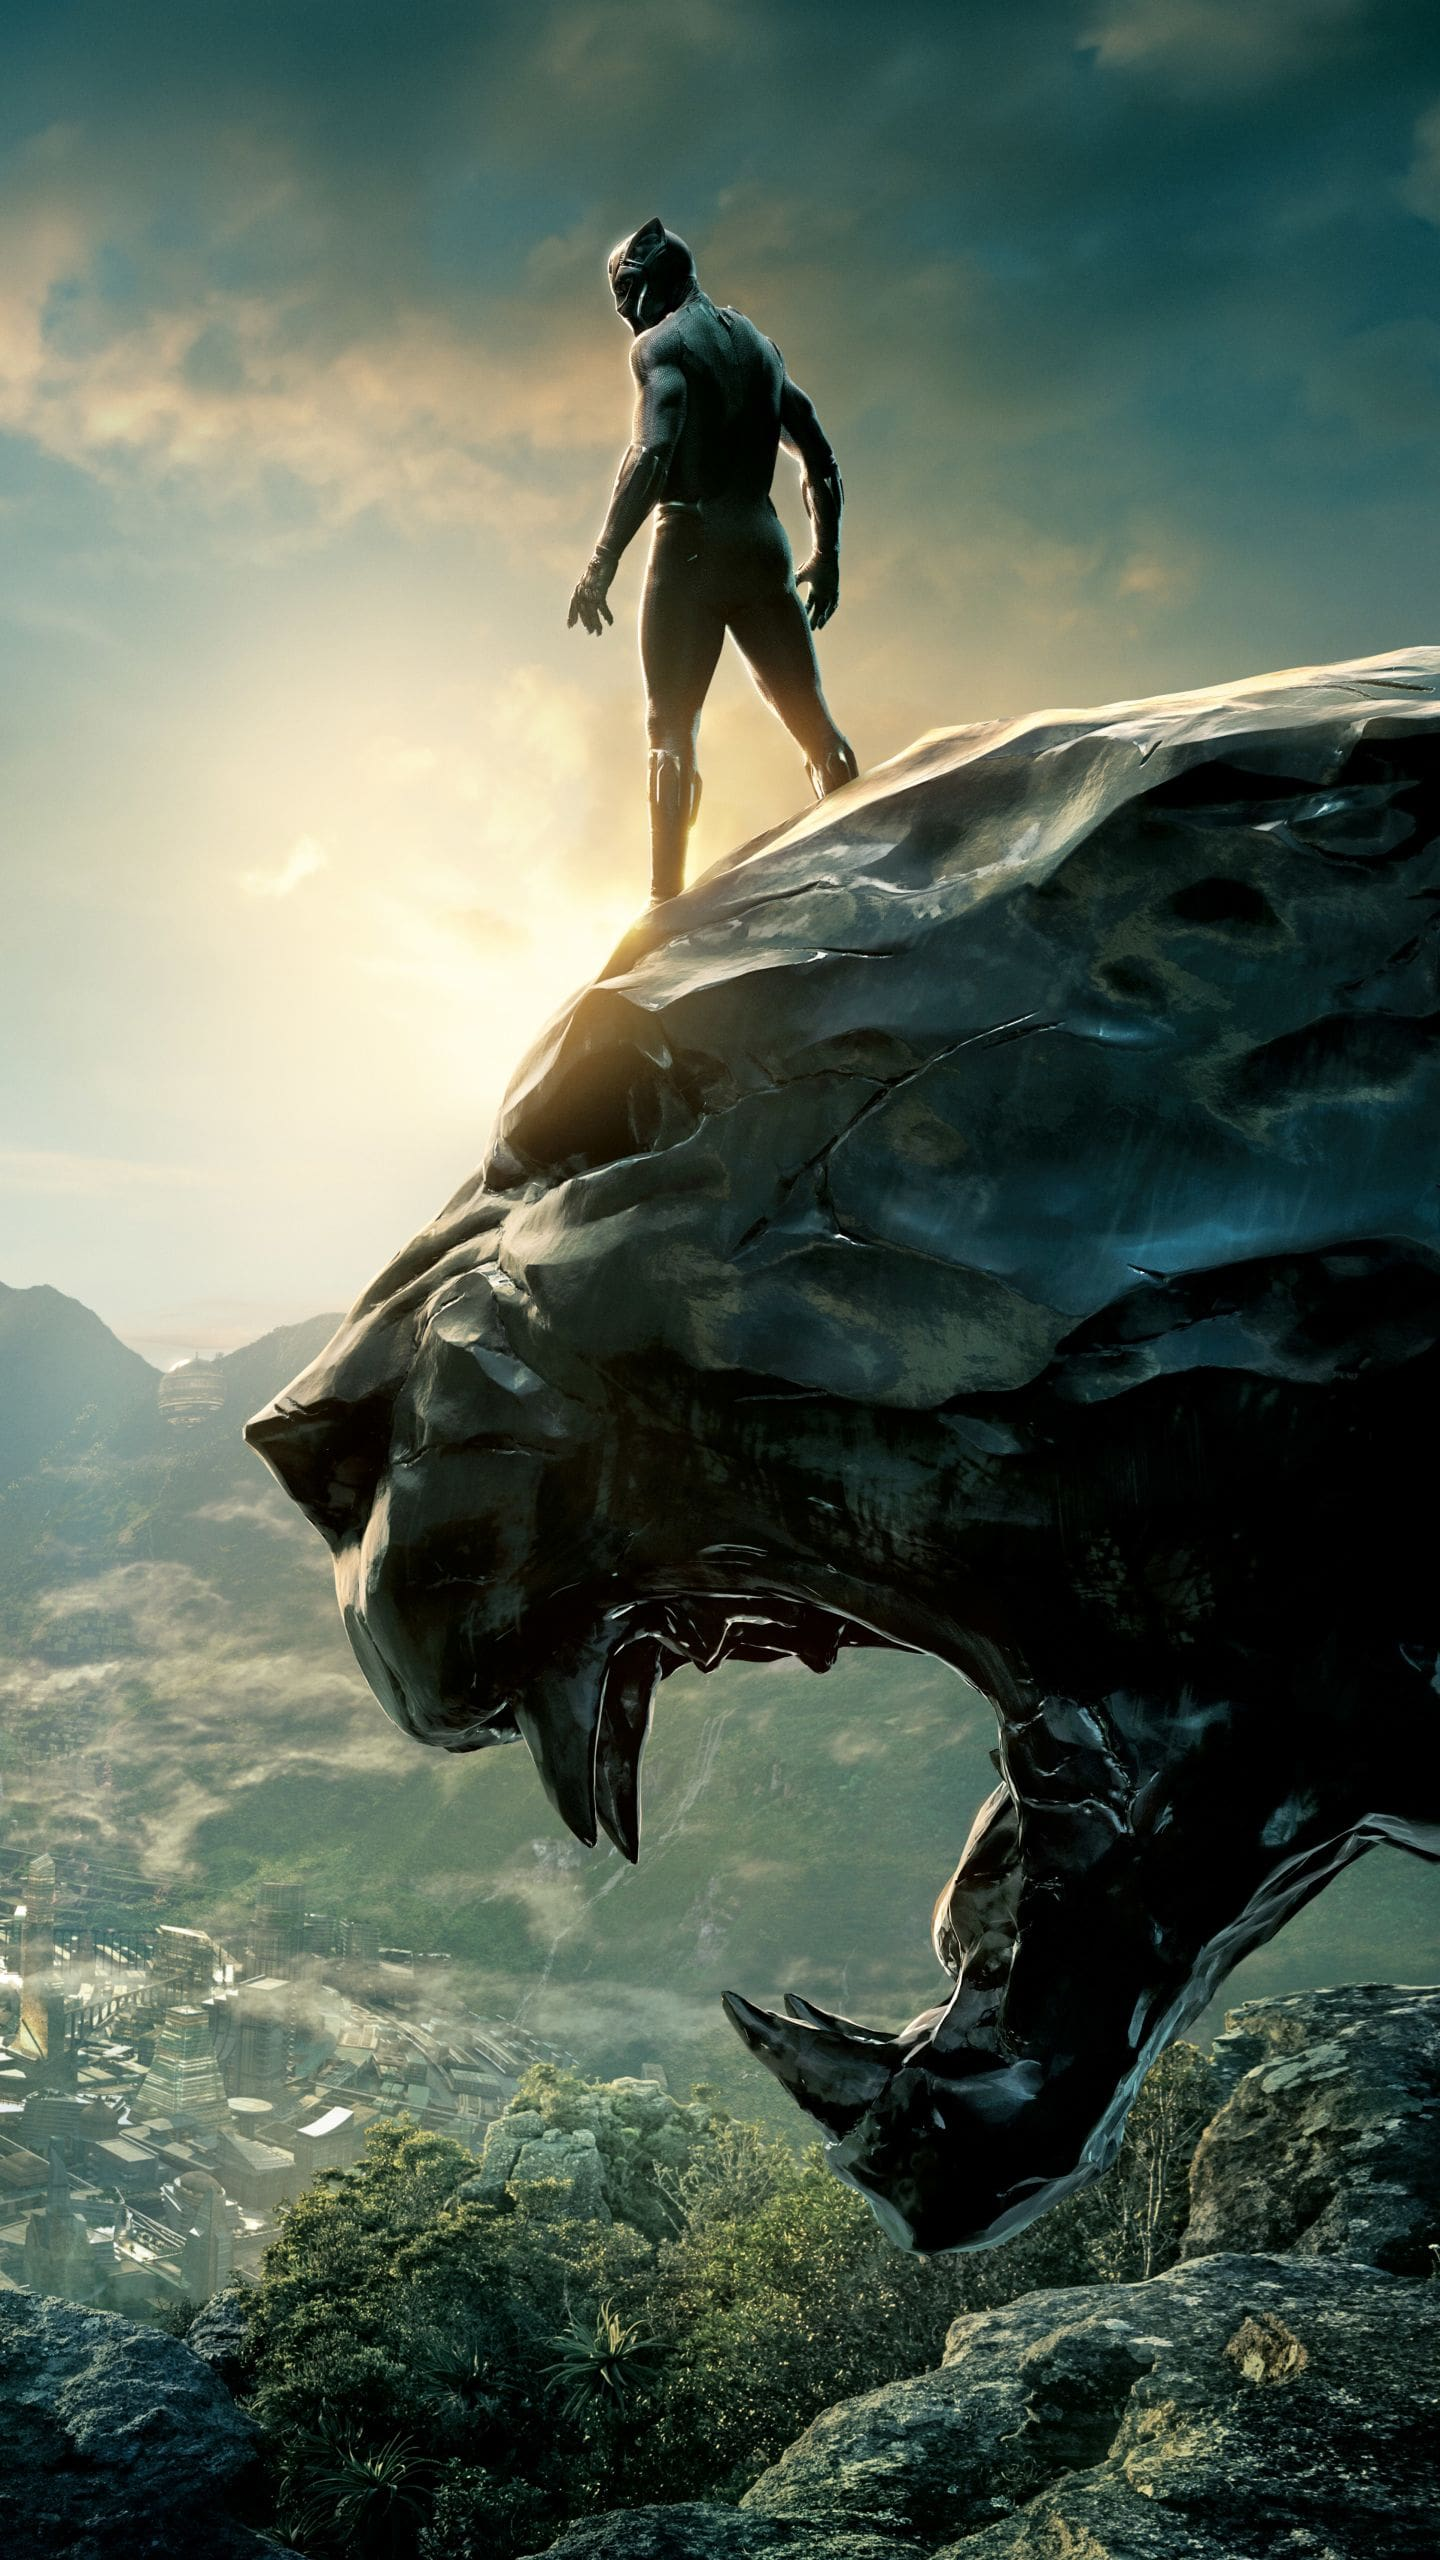 Black Panther Wallpapers Kolpaper Awesome Free Hd Wallpapers